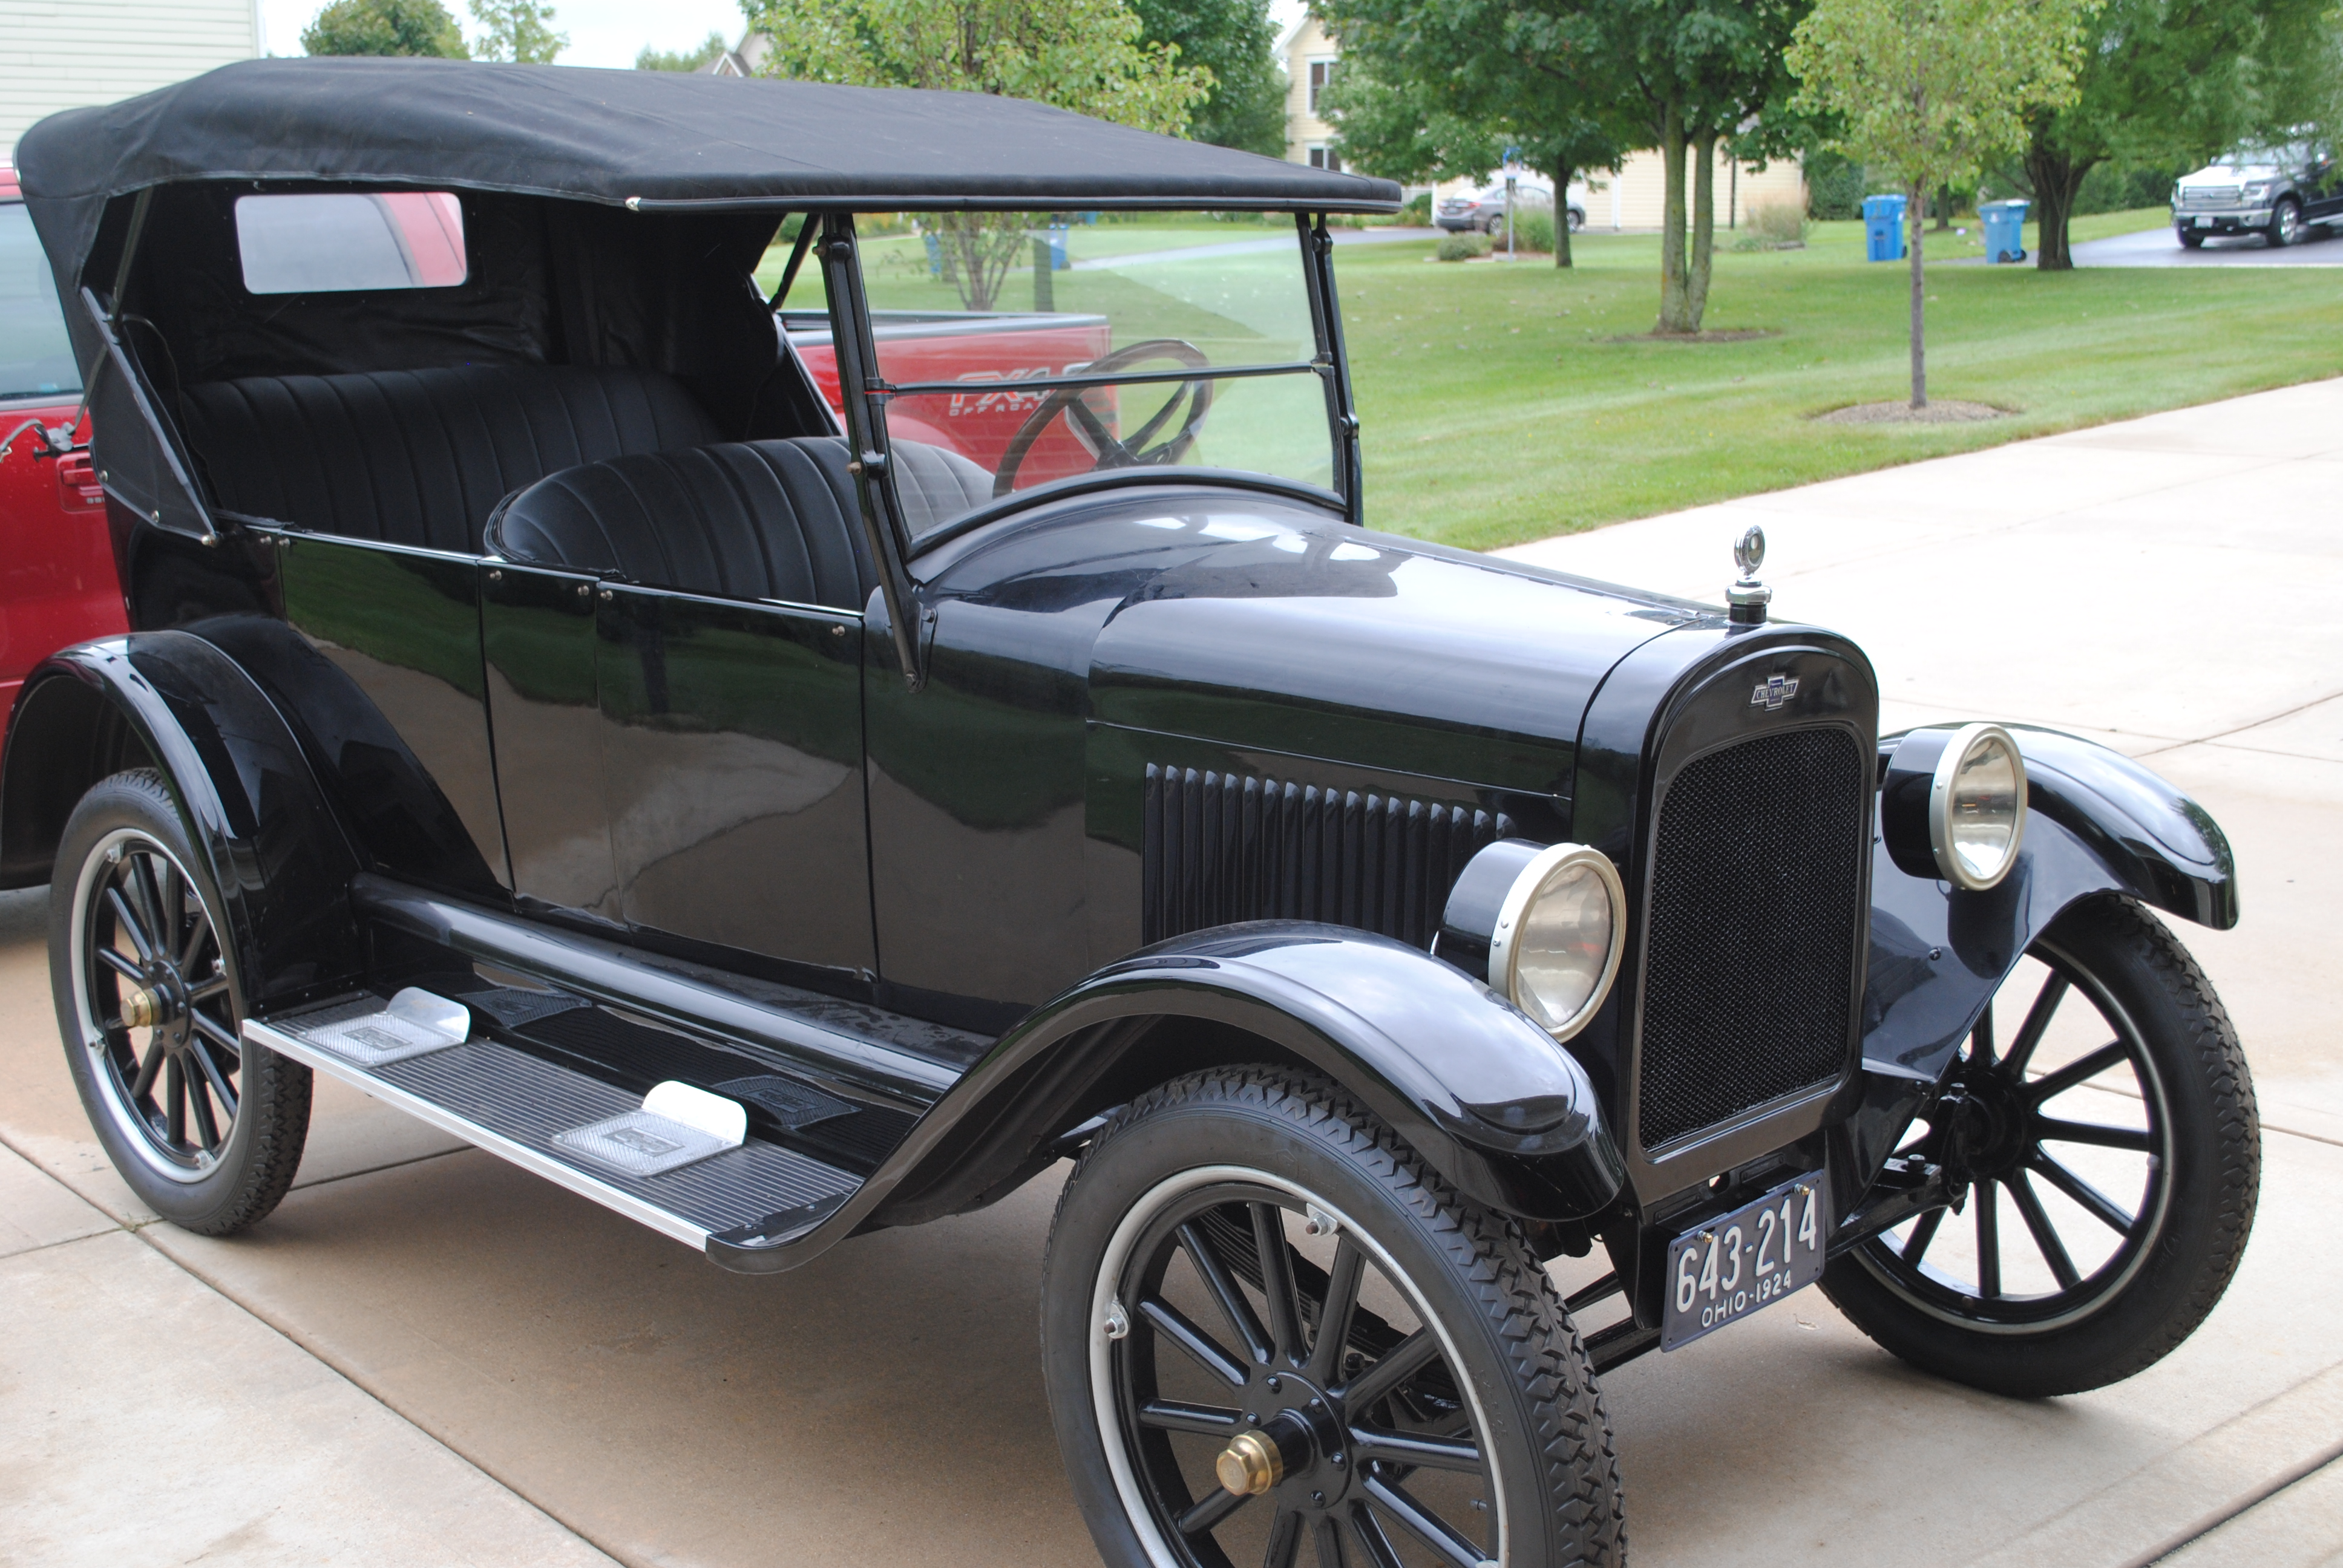 Superior Motors Menu >> 1924 Chevrolet Superior – sold | OLDMOTORSGUY.COM